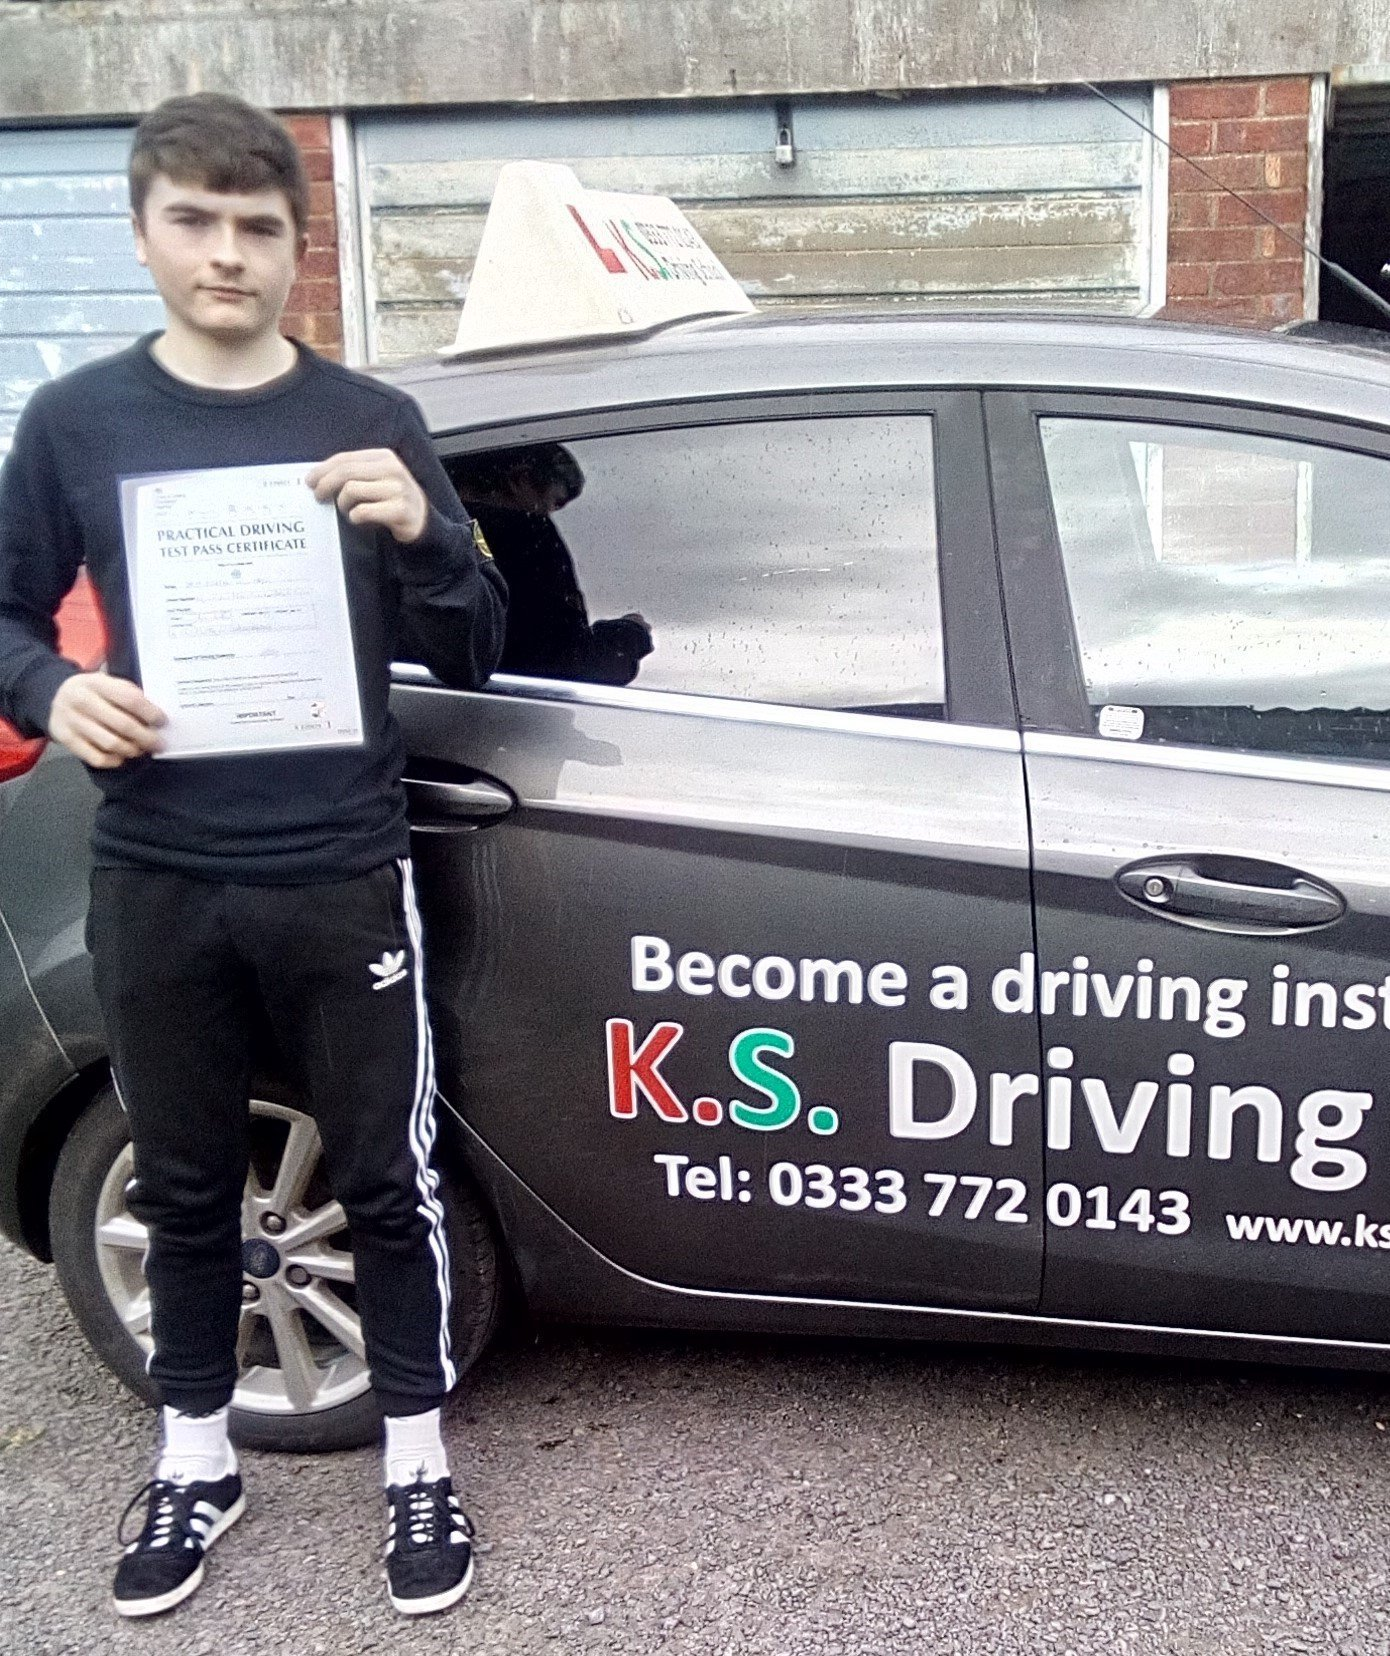 Congratulations to Kieran Williams passing